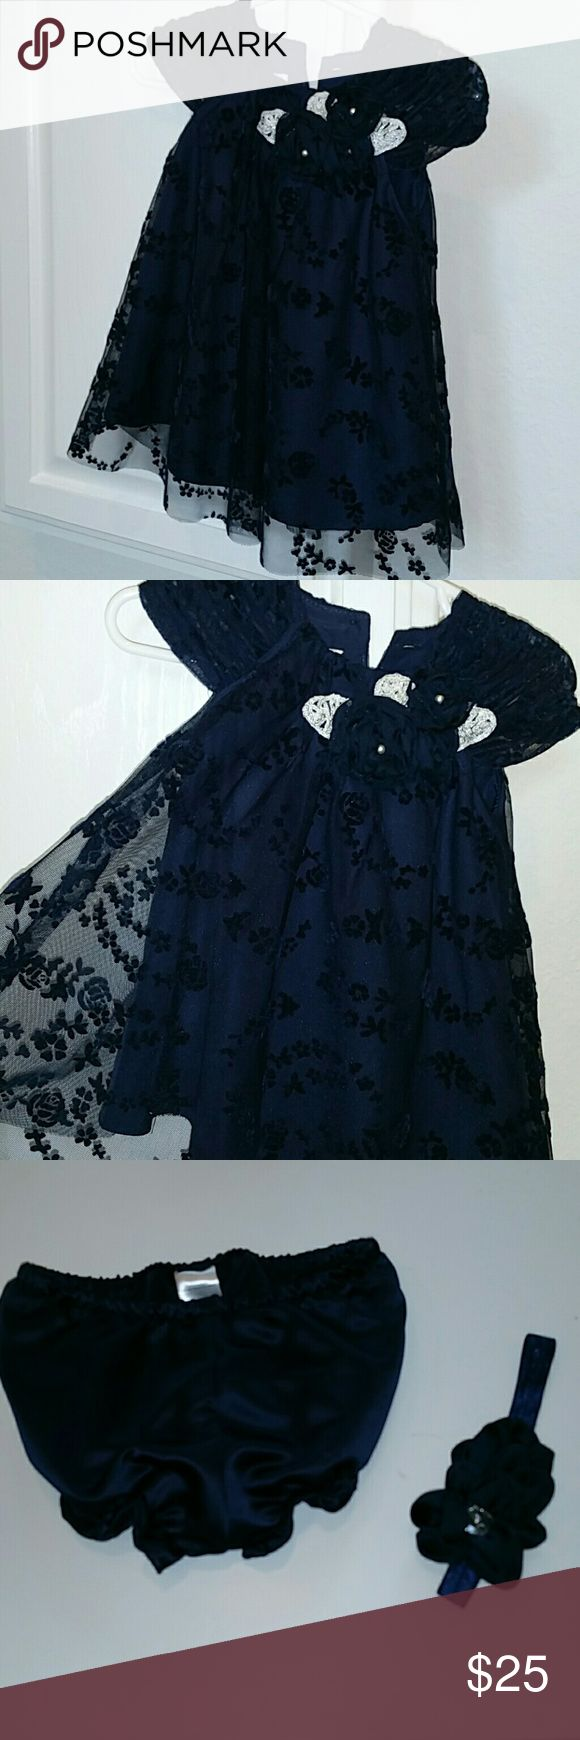 Baby girl Holiday dress 9 month Gorgeous, navy dress. Perfect for holidays, fancy wedding, church. Loved it! I think it could work for 6-9 months. Brand: Pippa & Julie. Includes coordinating headband and bloomers with ruffle legs. Worn once pippa & julie Dresses